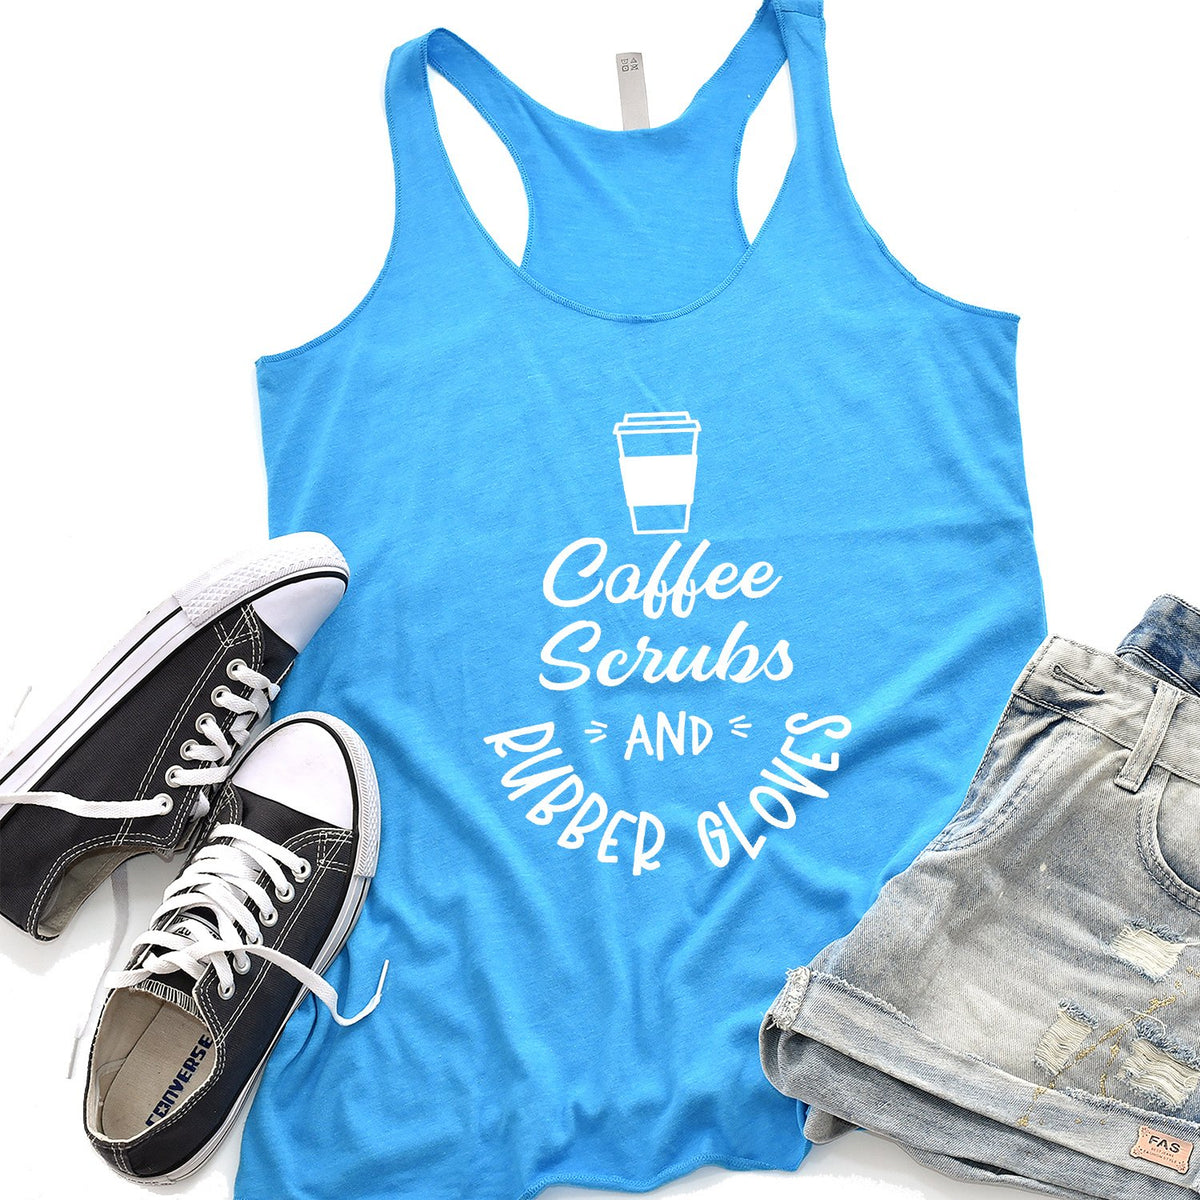 Coffee Scrubs and Rubber Gloves - Tank Top Racerback